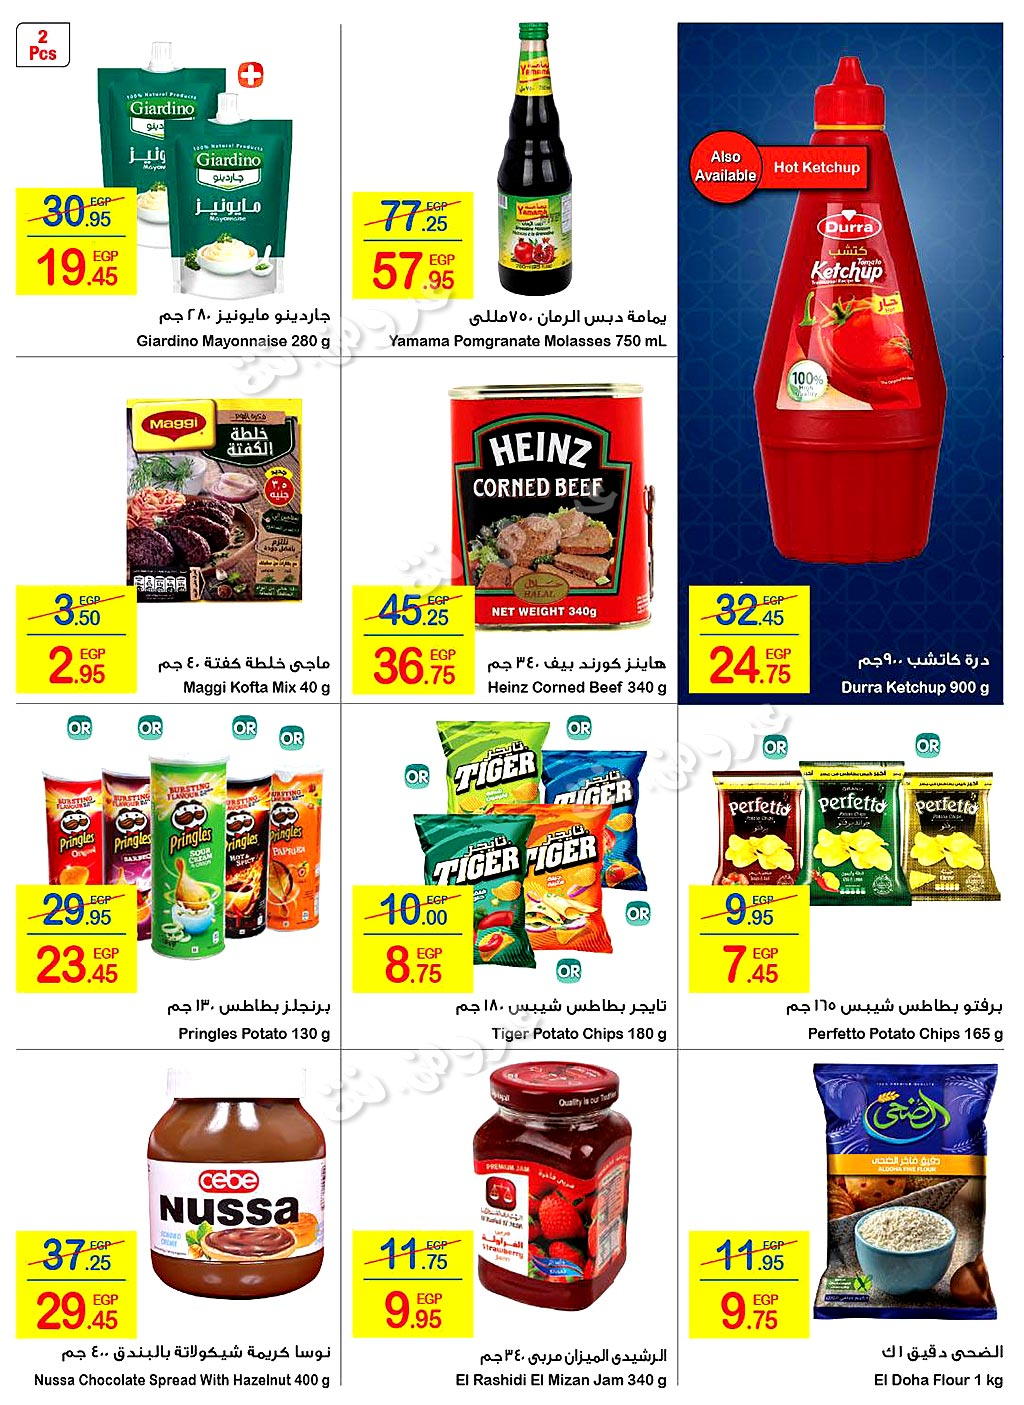 carrefour-market offers from 29july to 14aug 2019 page number 8 عروض كارفور ماركت من 29 يوليو حتى 14 أغسطس 2019 صفحة رقم 8